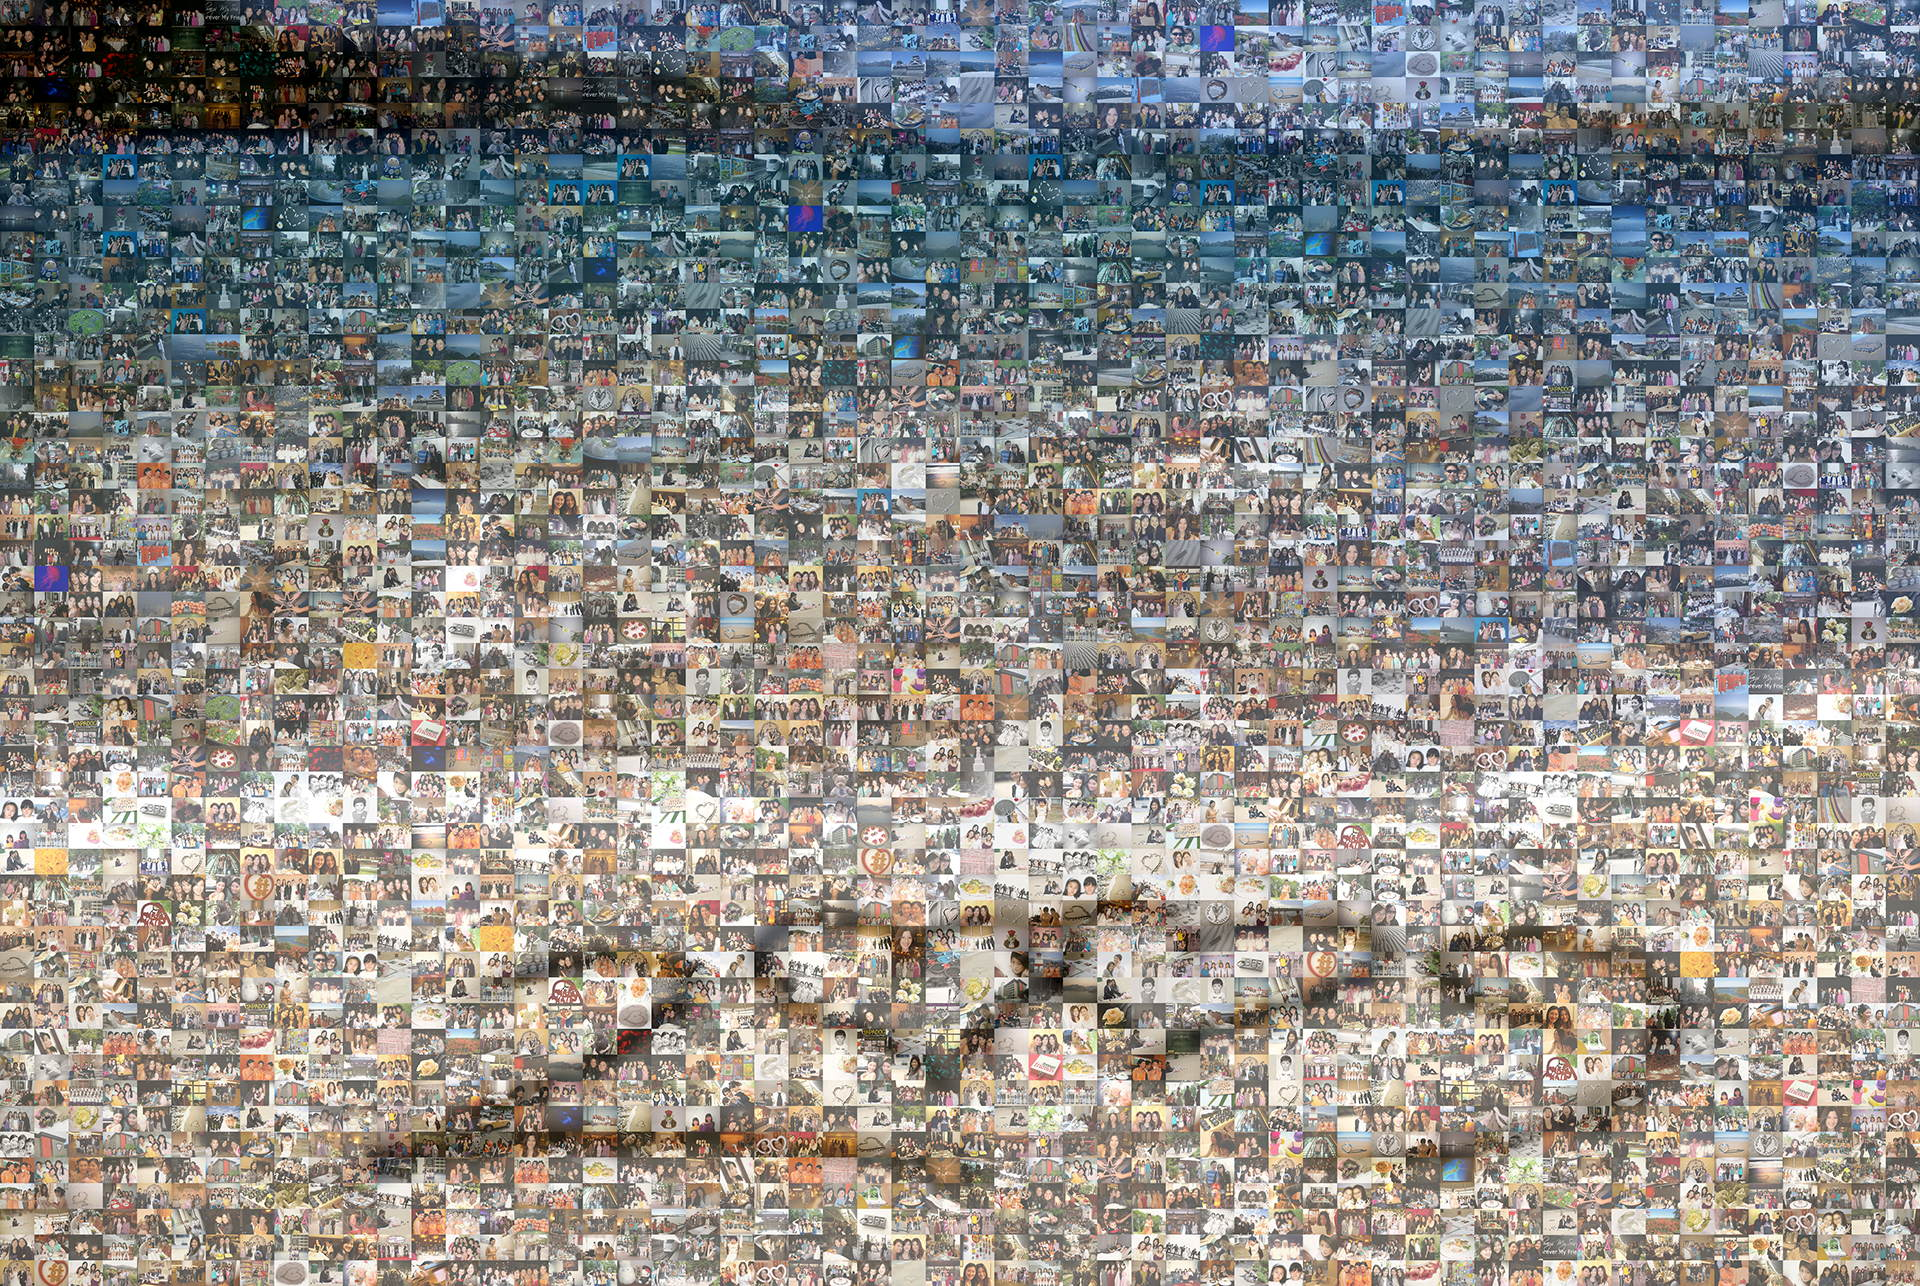 photo mosaic created using 195 user submitted photos